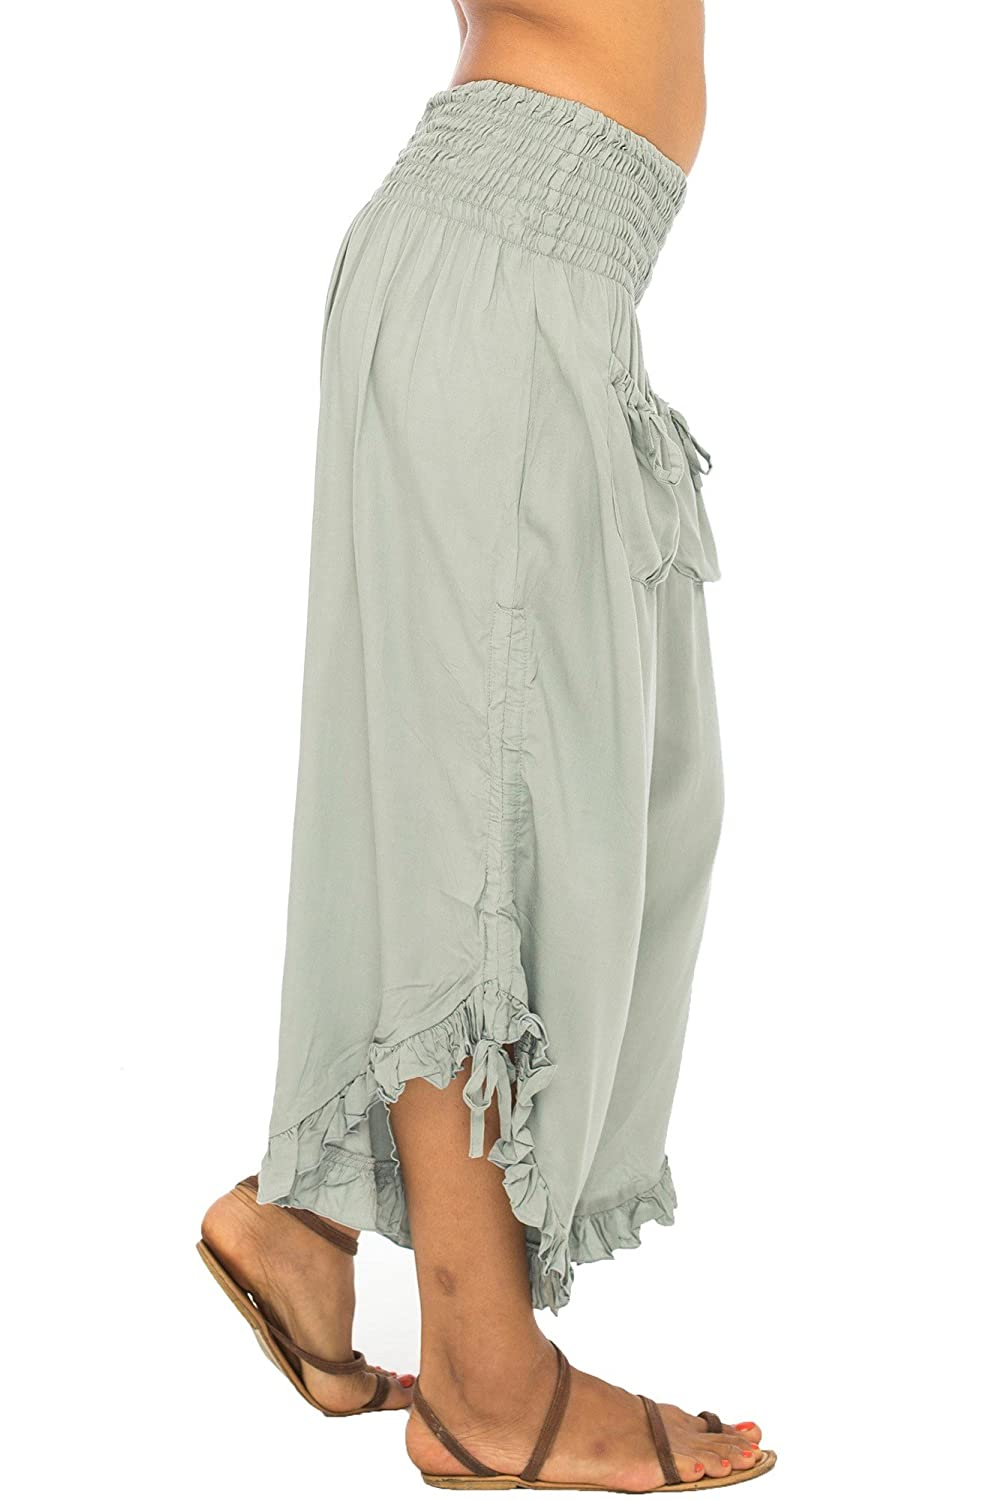 Women's Cropped Wide Leg Asian Lady Gray Pirate Pants - DeluxeAdultCostumes.com